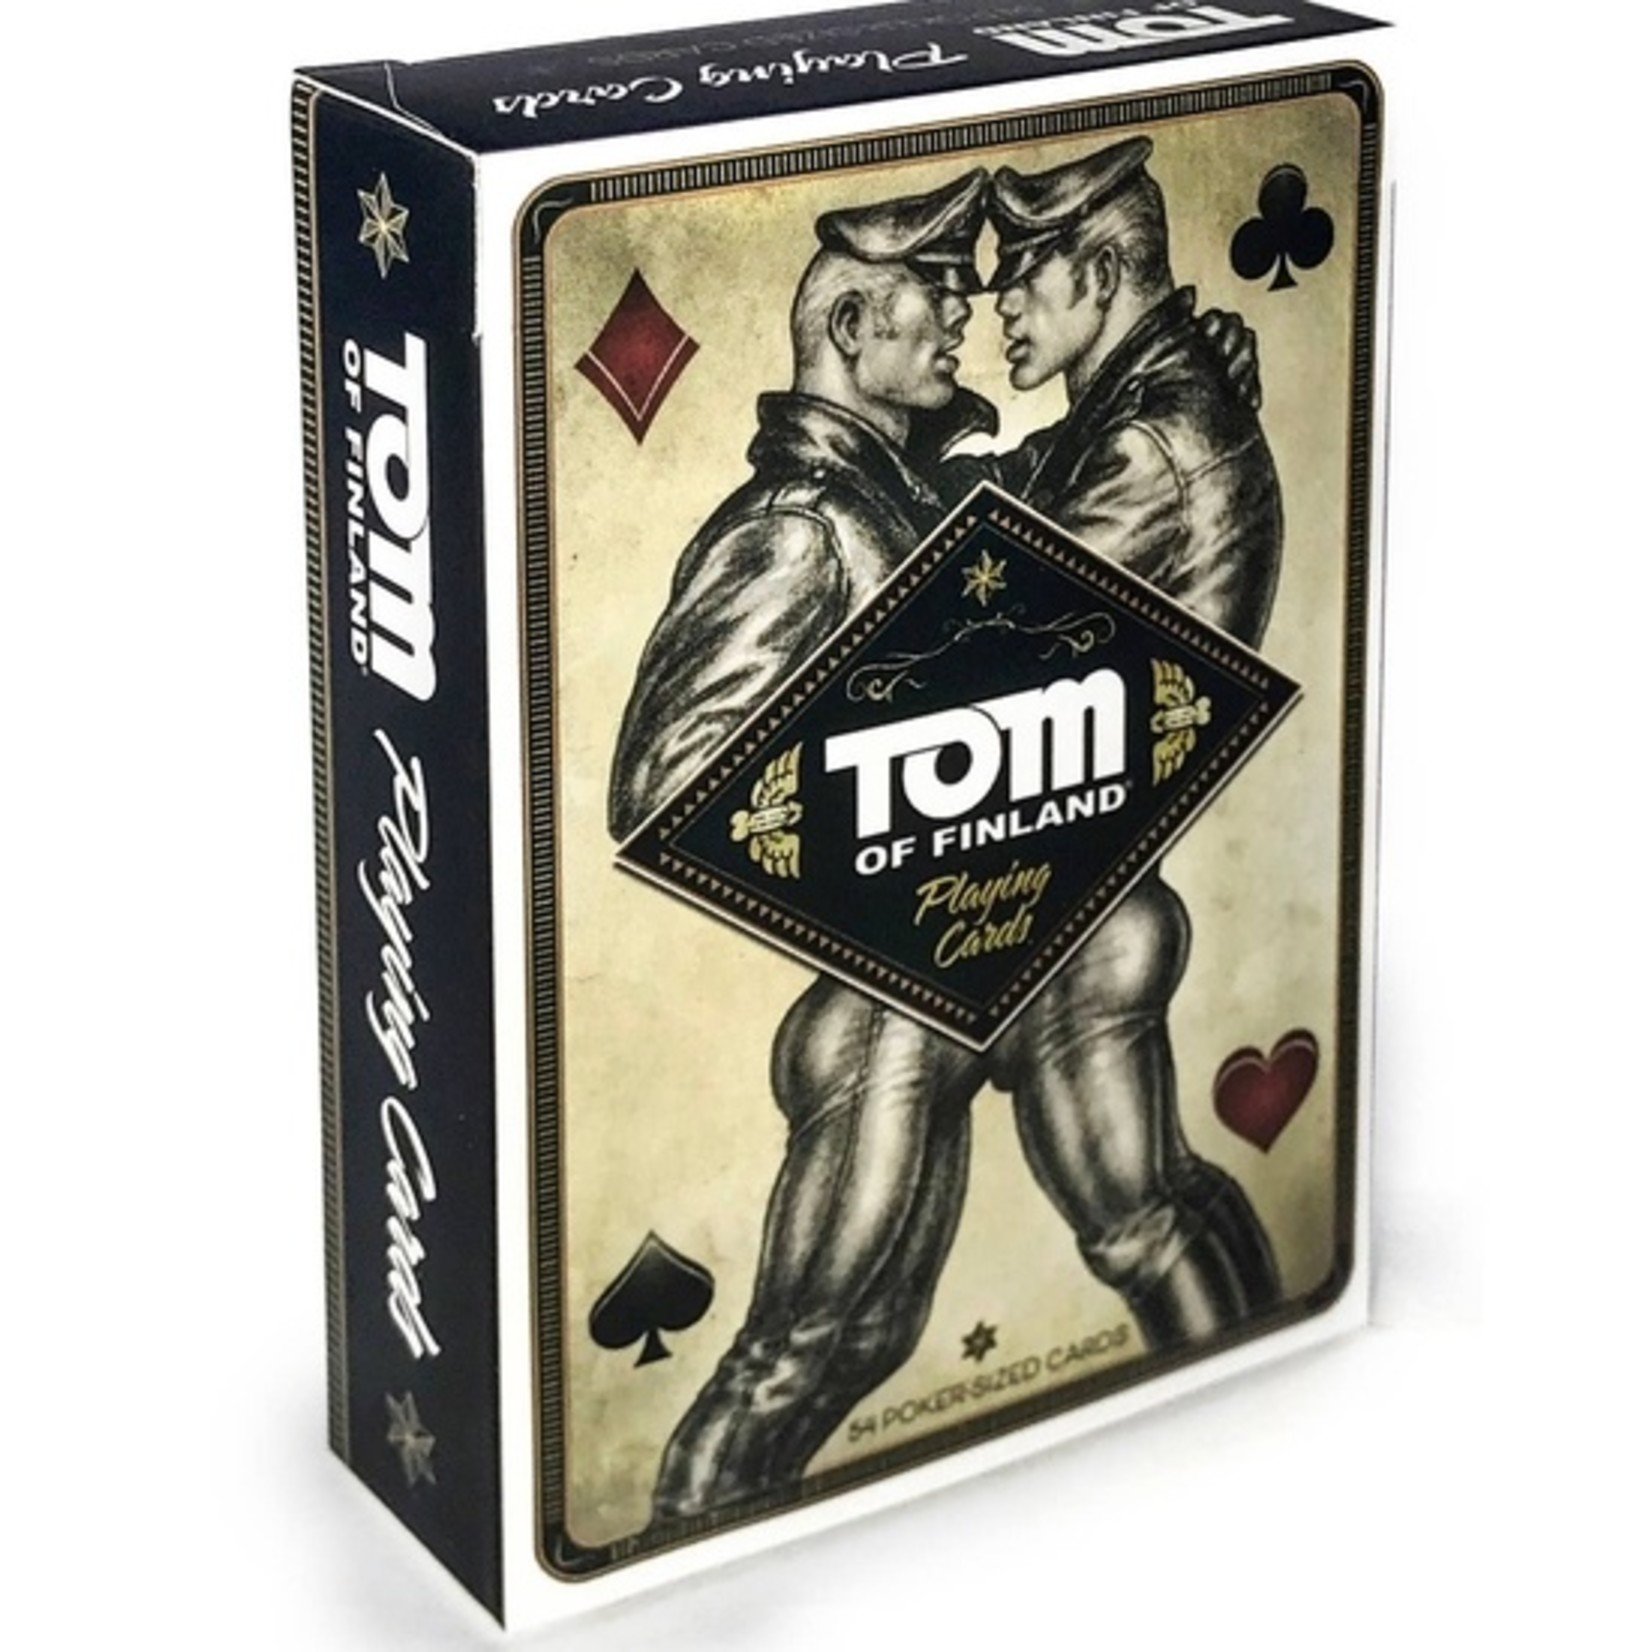 Tom of Finland Playing Cards